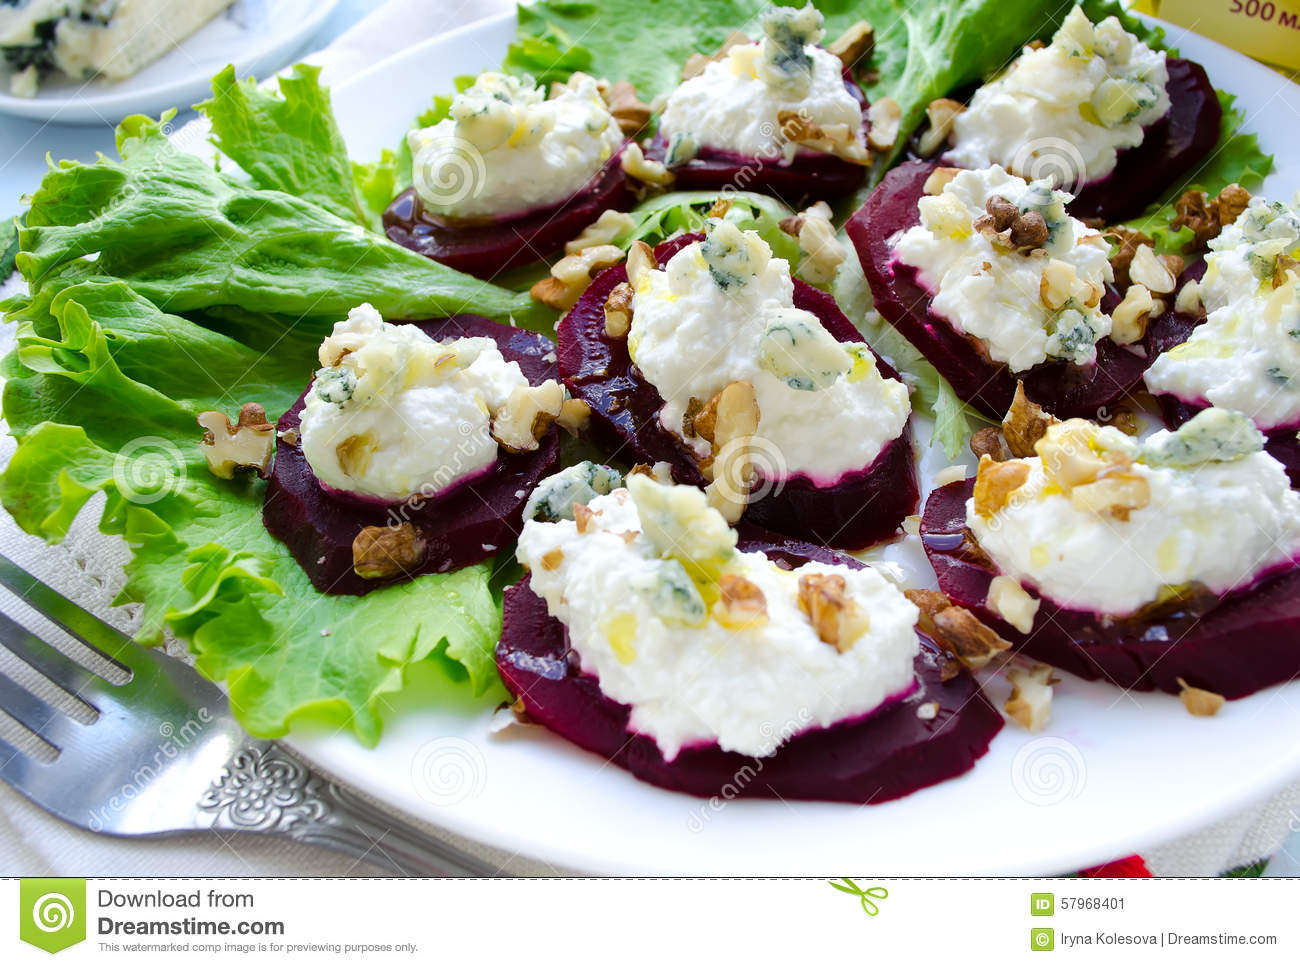 Beet Salad with goat cheese, walnuts, greens and herbs and olive oil.